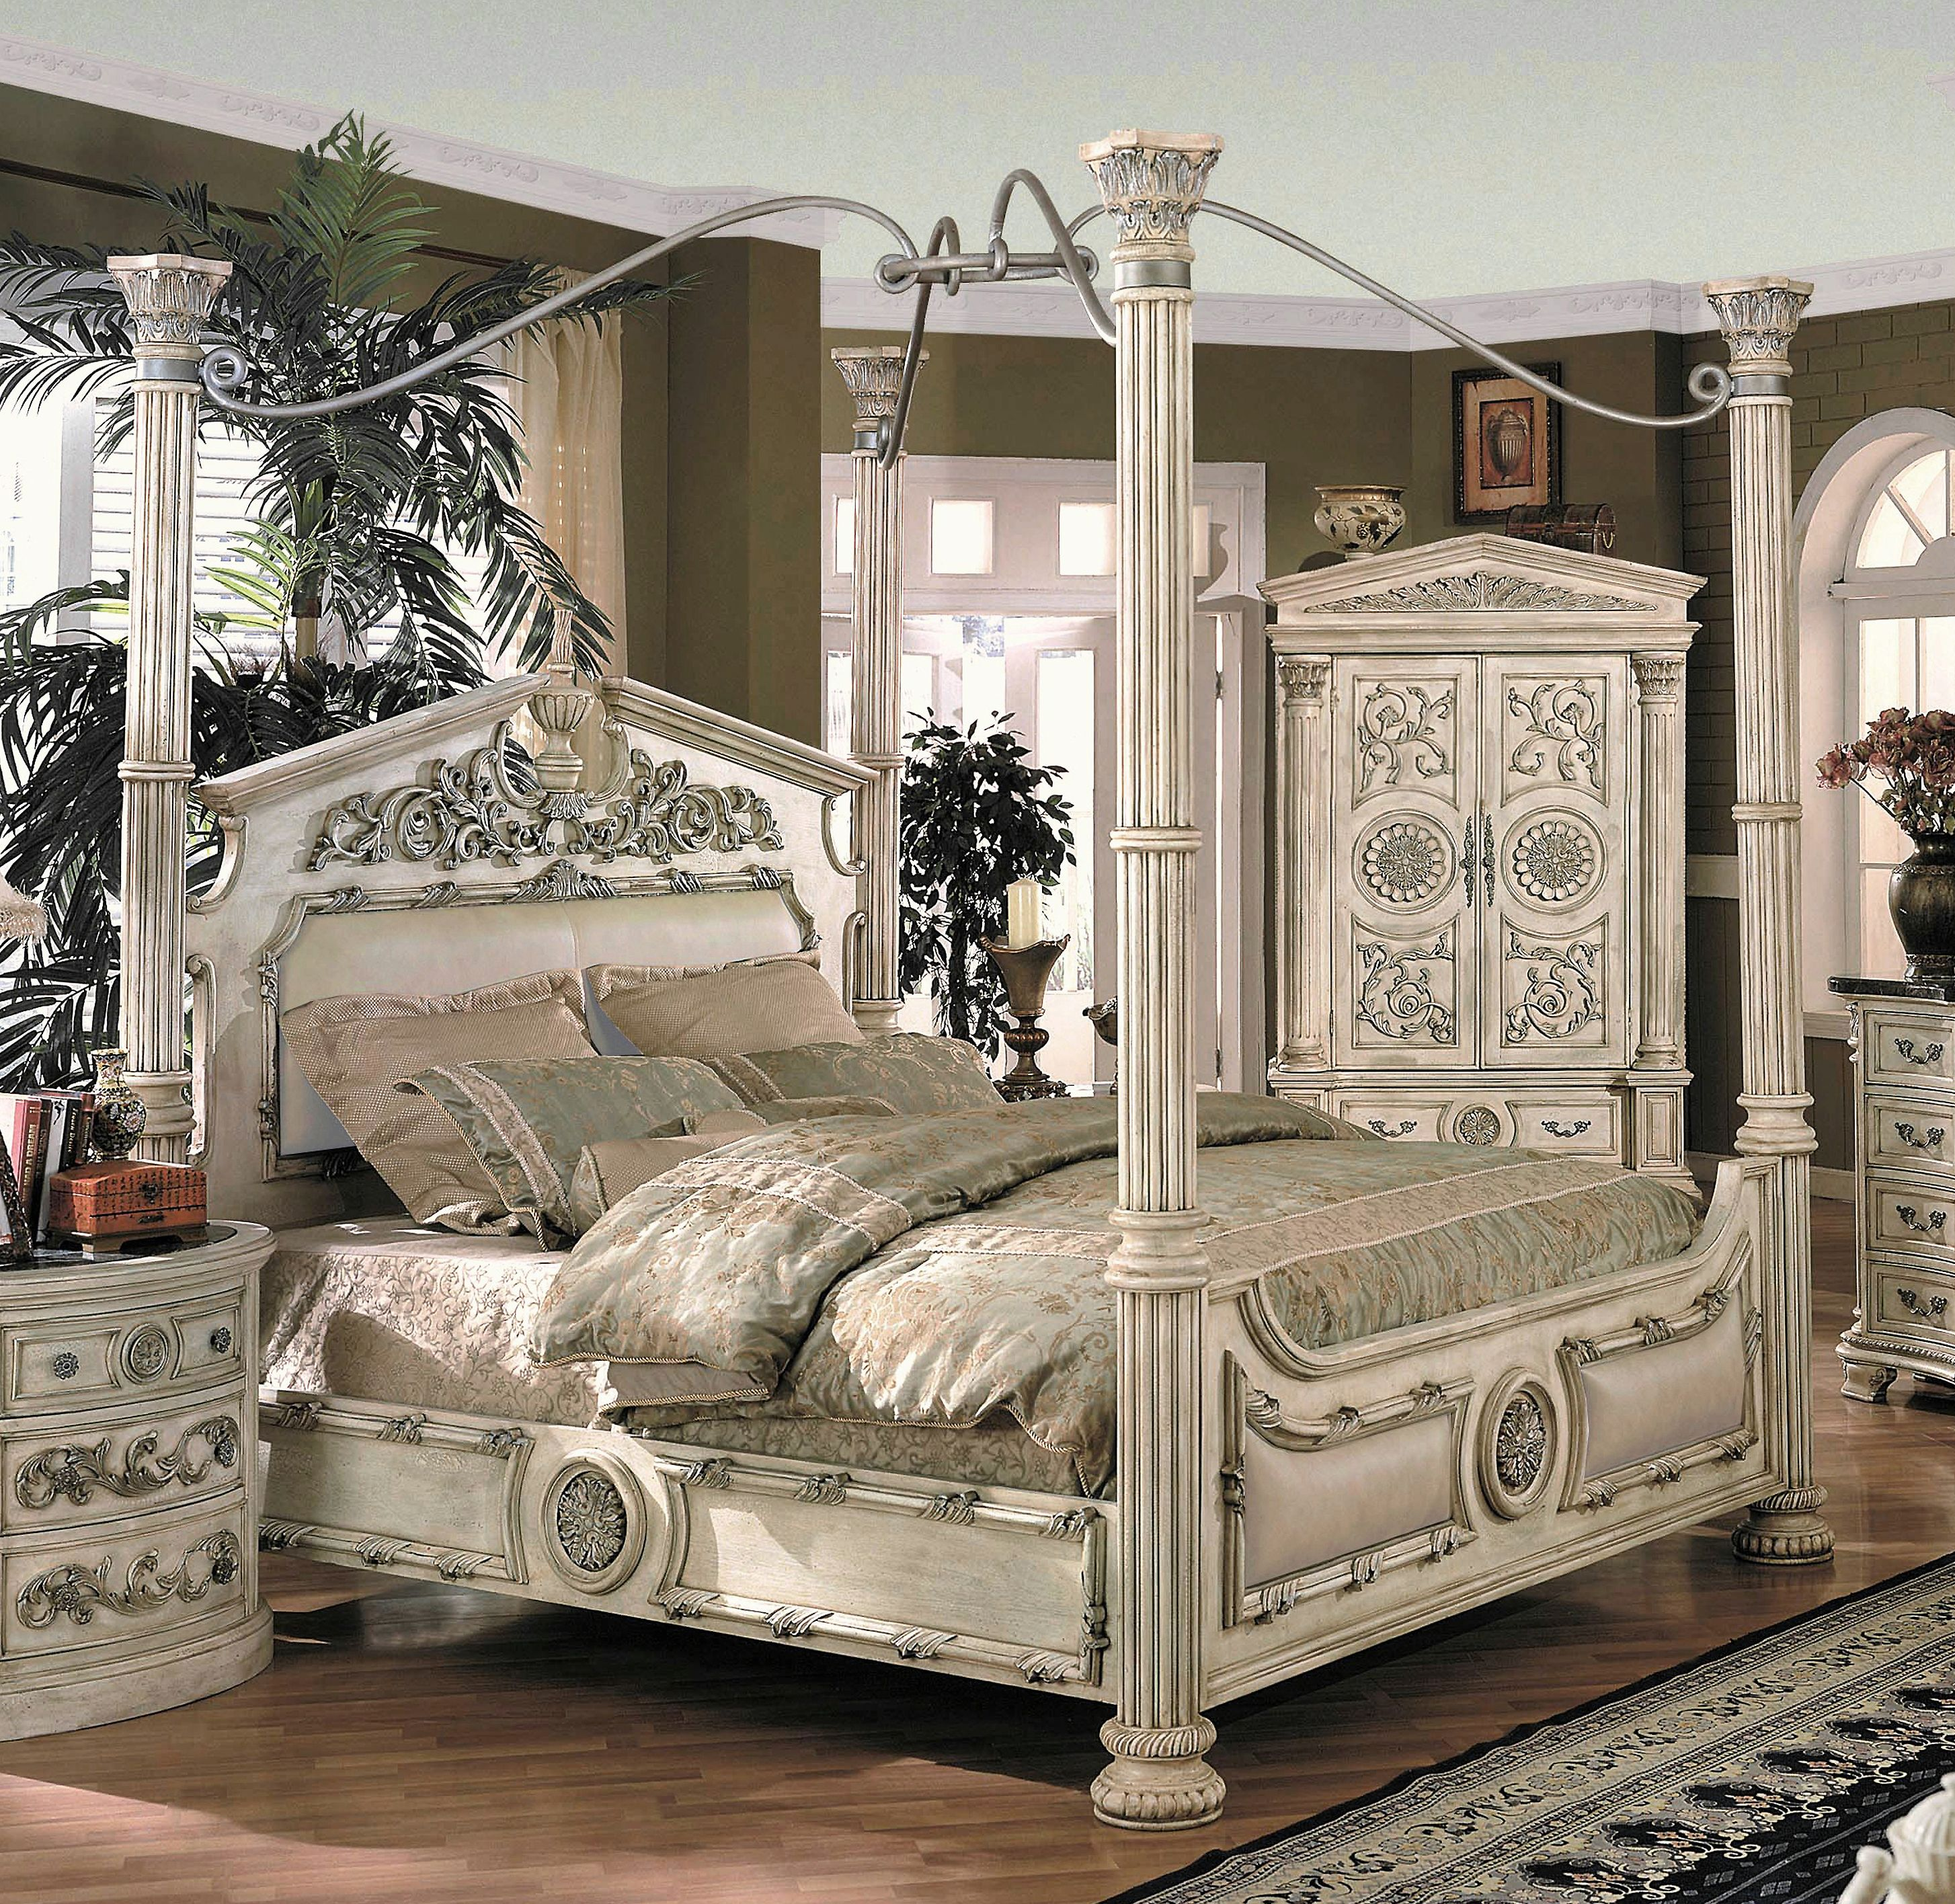 """I think this qualifies as a bed fit for a """"Queen""""."""